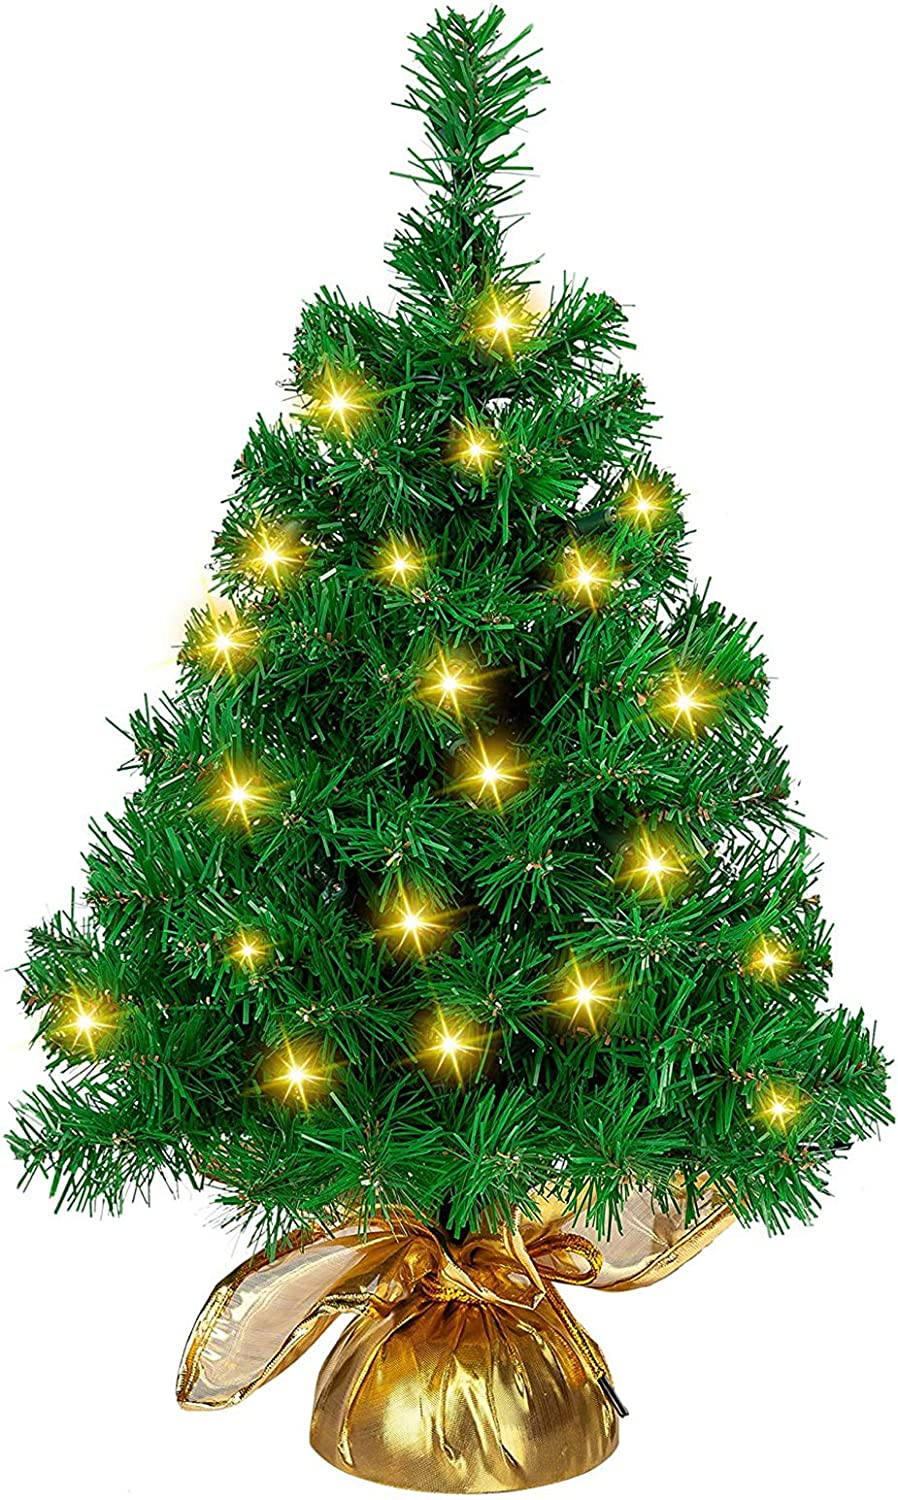 "Joiedomi 22"" Prelit Tabletop Christmas Tree with 100 Branch Tips and 50 Warm White Lights in Gold Cloth Bag for Home and Office Christmas Decorations"